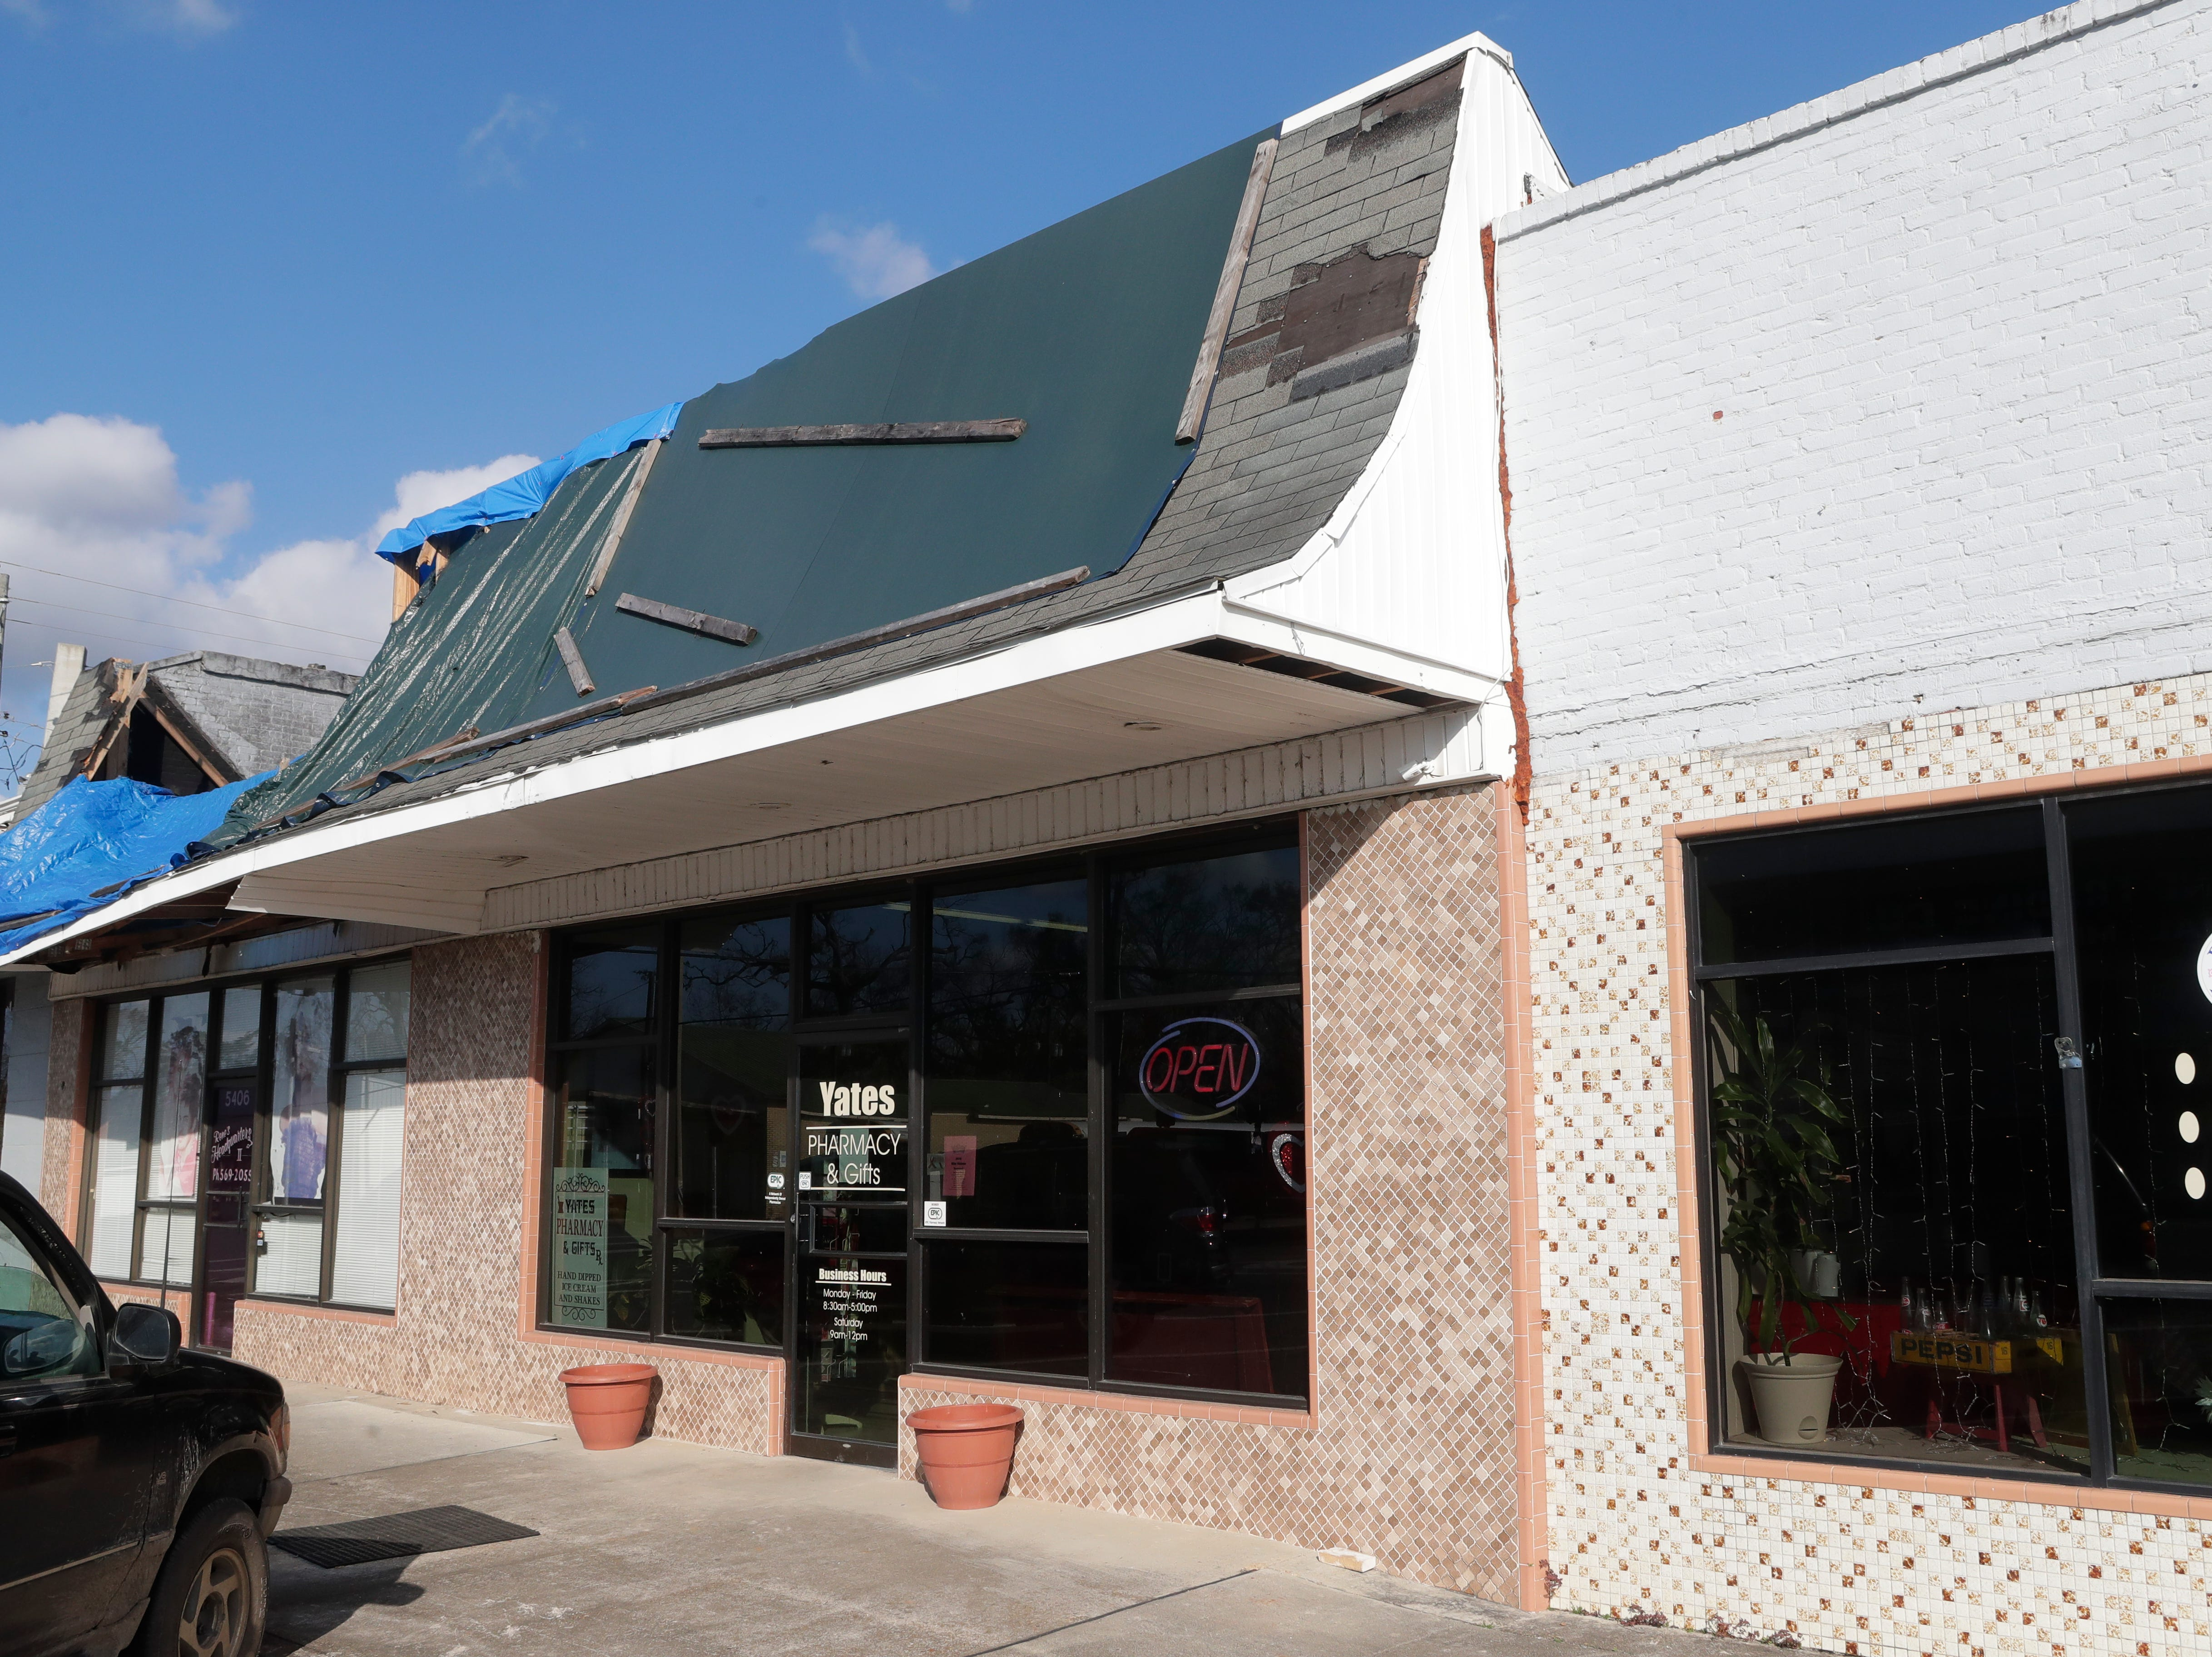 The outside of Yates Pharmacy and Gifts in Malone, Fla., Tuesday Feb. 6, 2019. The roof which was ripped from the building during Hurricane Michael in Oct. 2018 is still in need of repair.